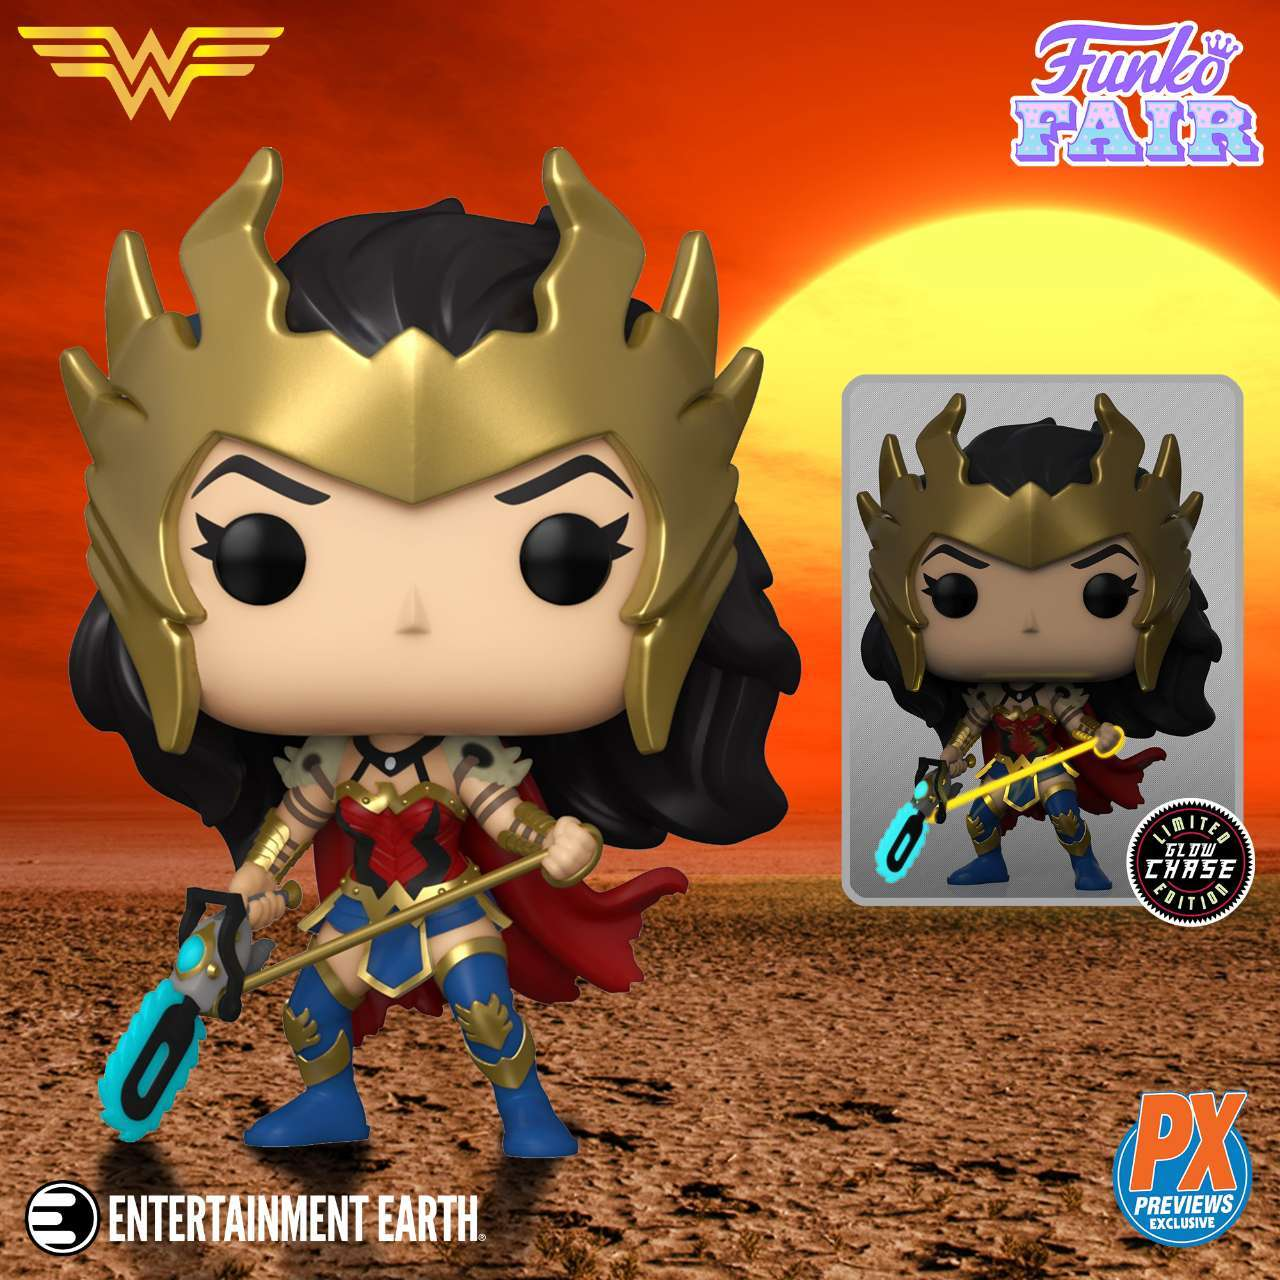 wonder-woman-px-exclusive-funko-pop